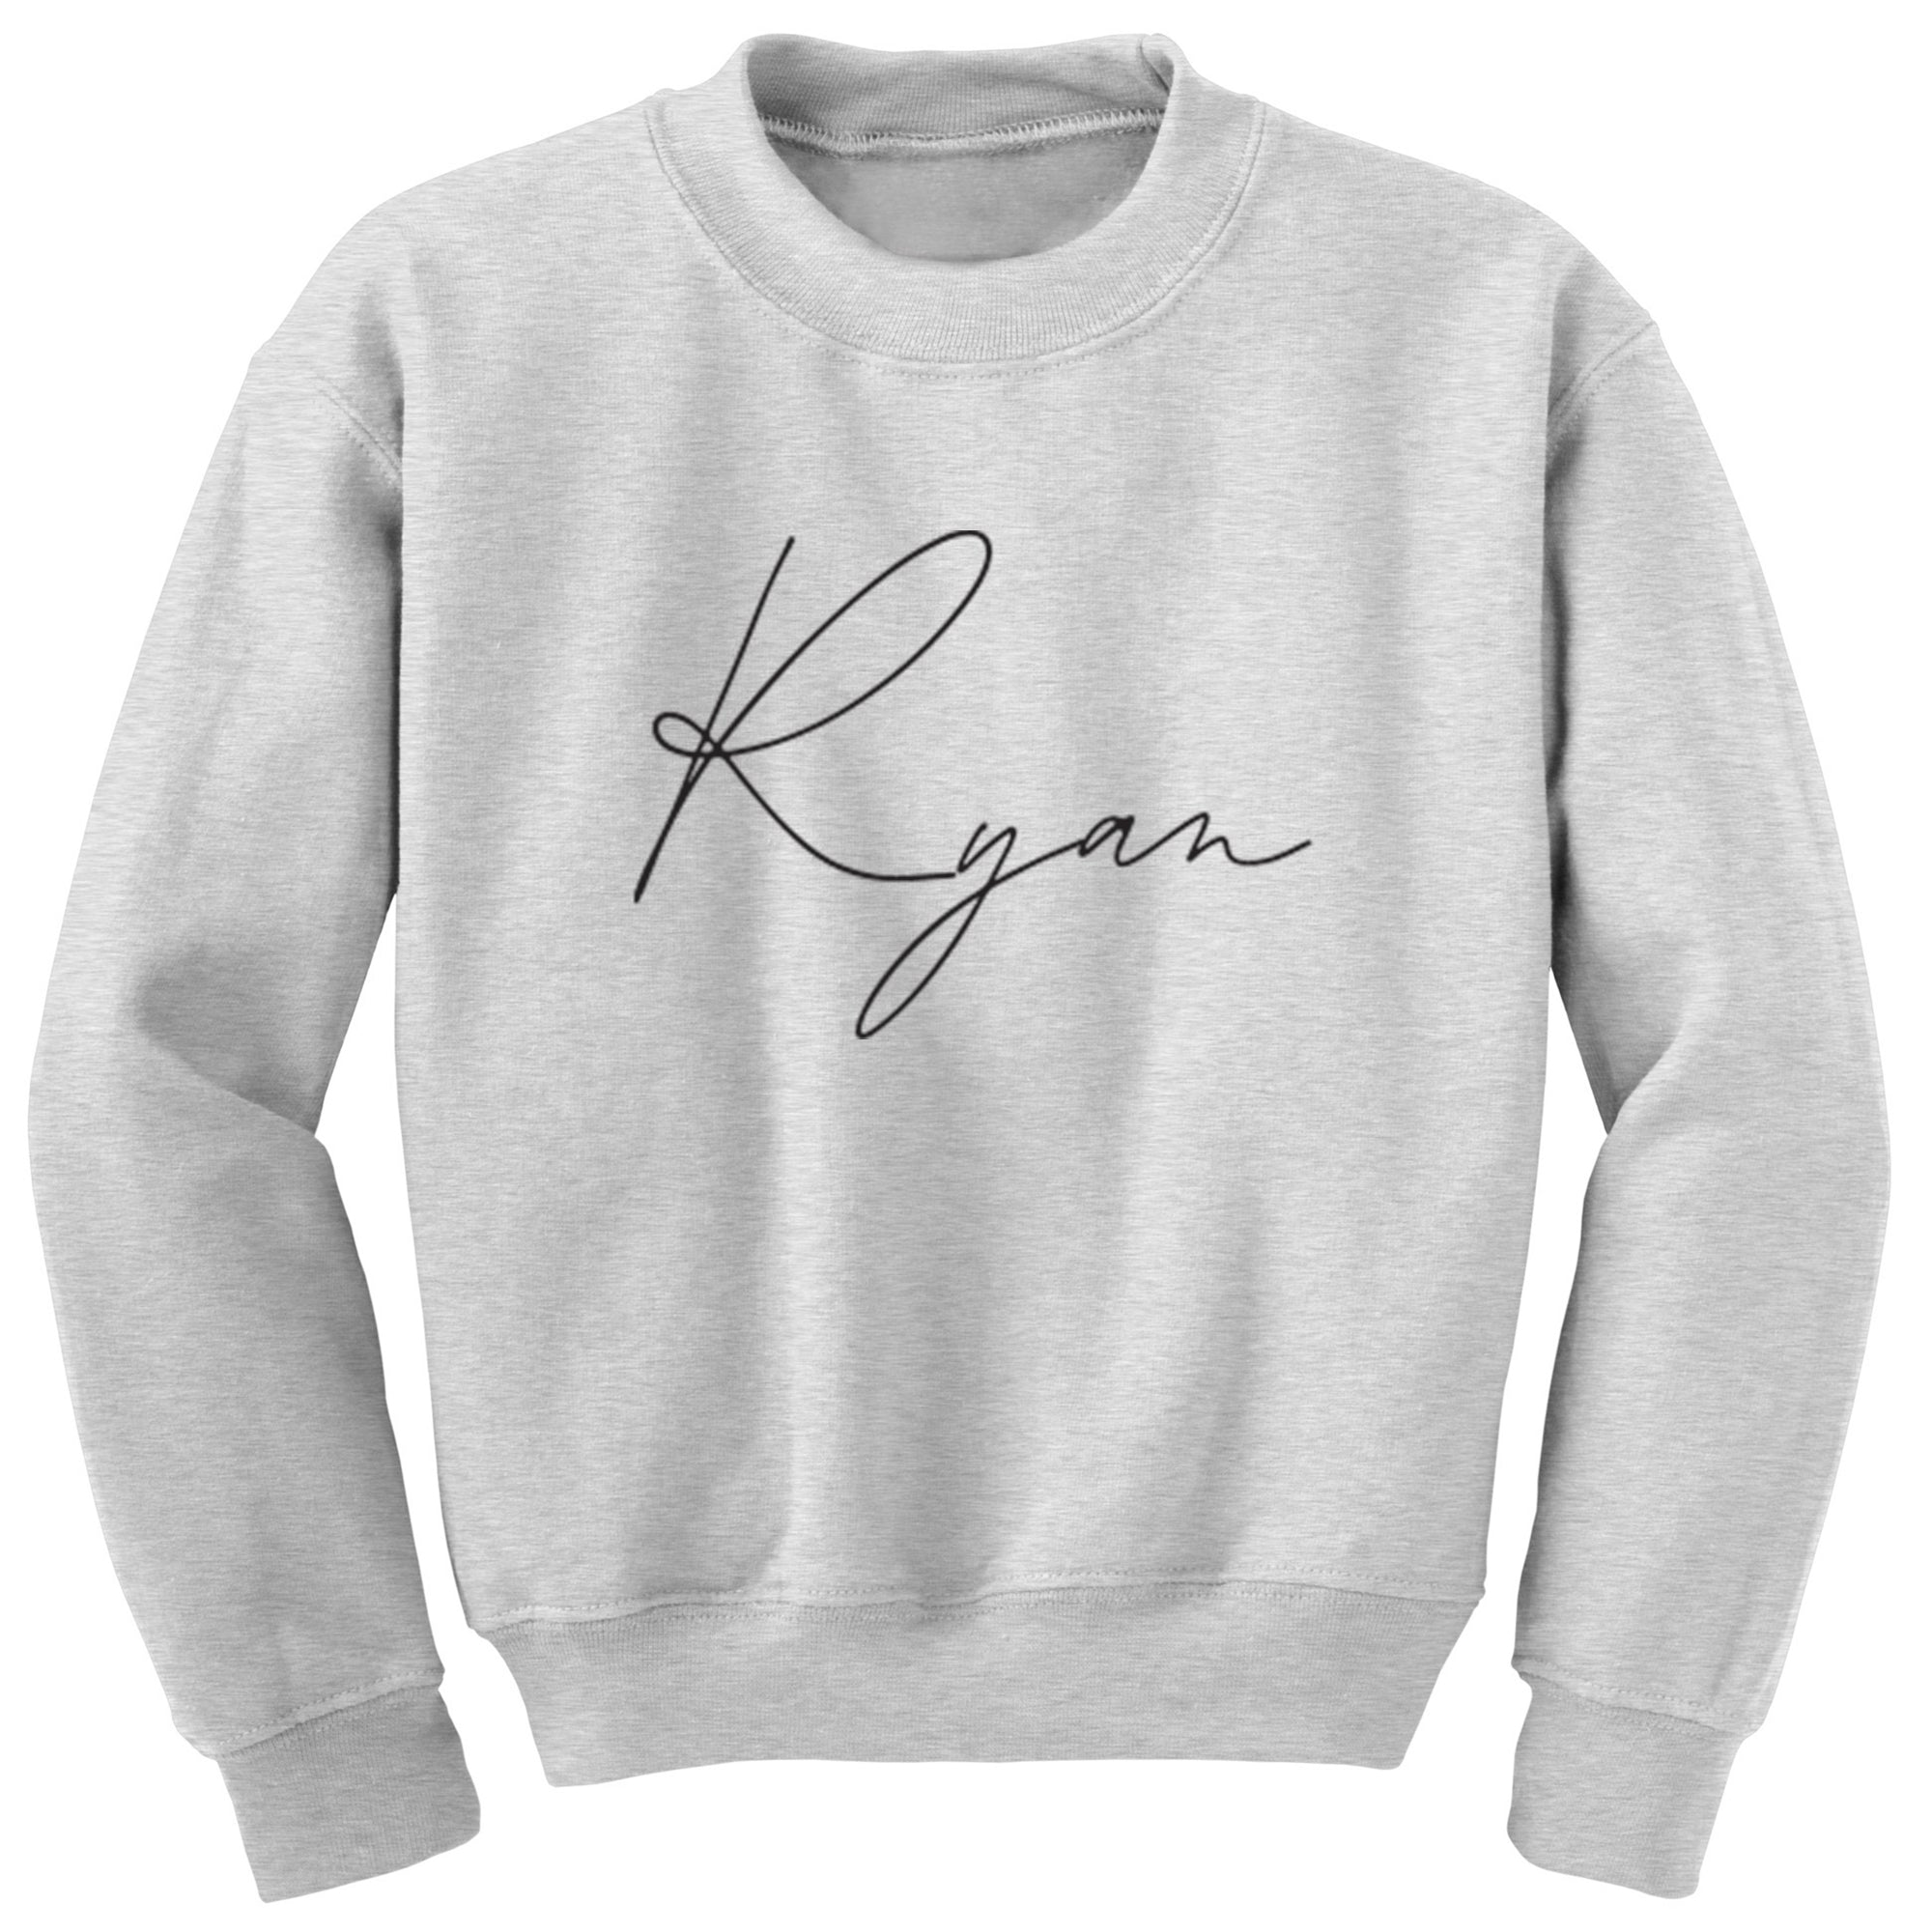 Personalised Name Script Design Childrens Ages 3/4-12/14 Unisex Jumper K2314